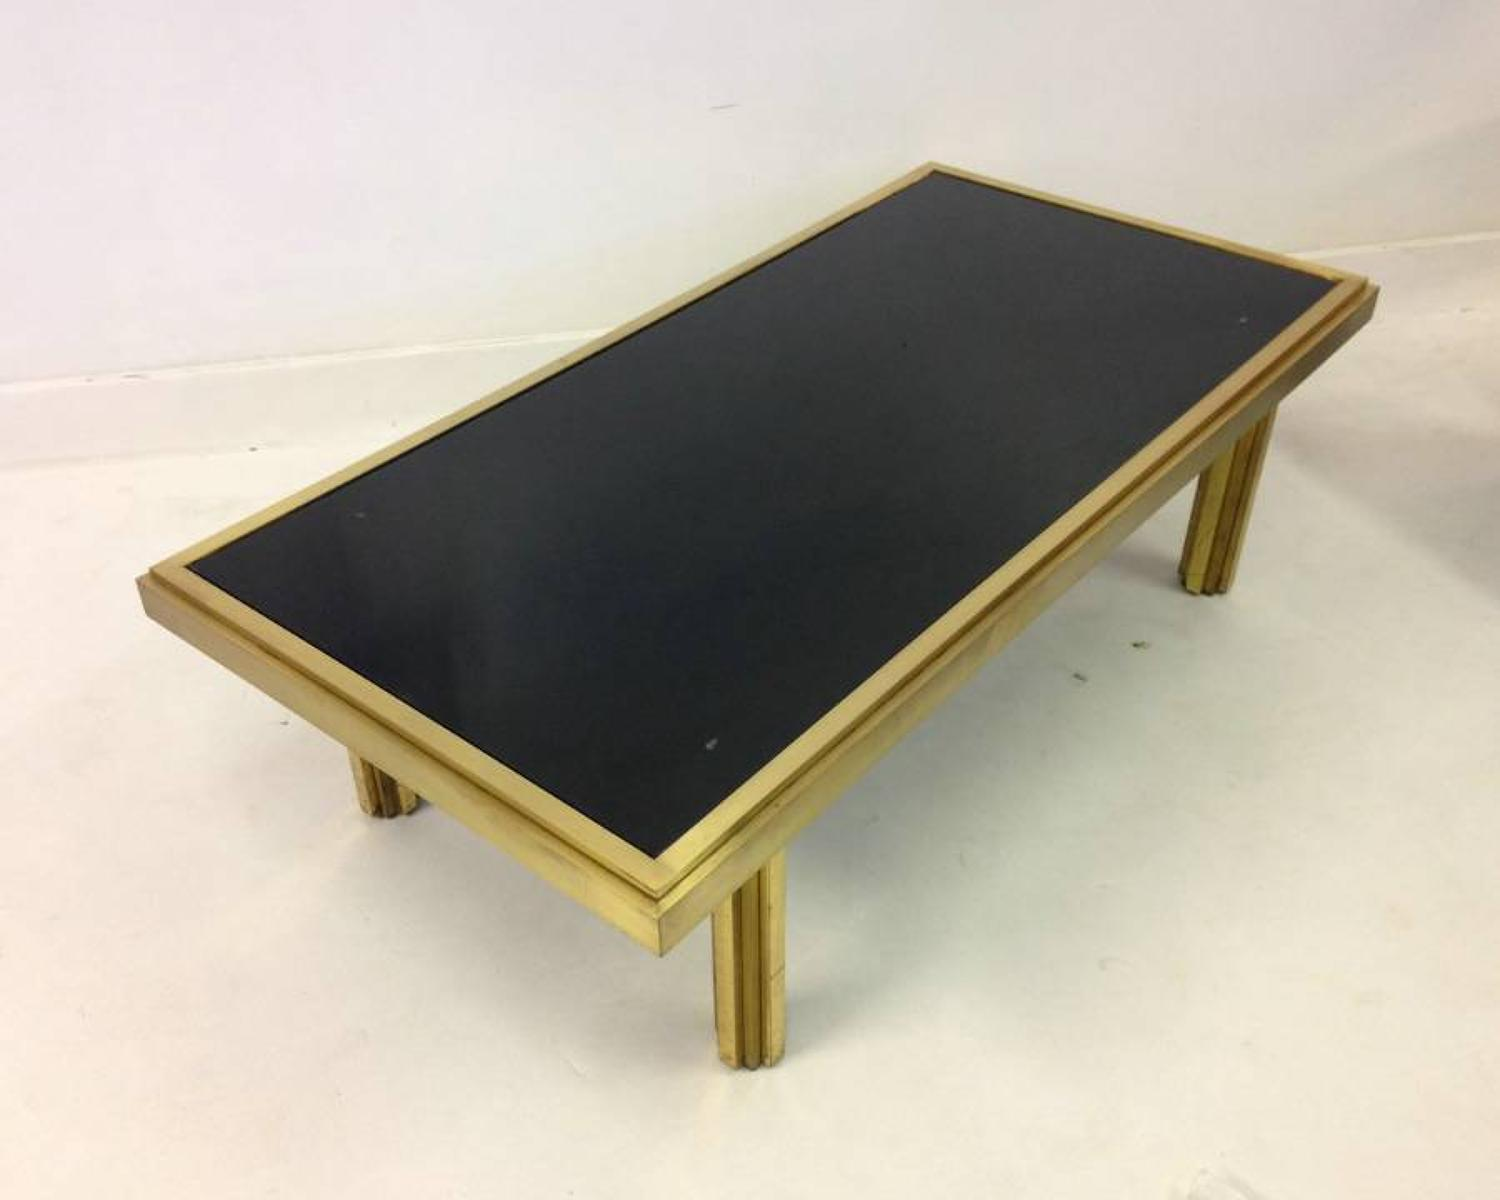 Brass and black glass coffee table